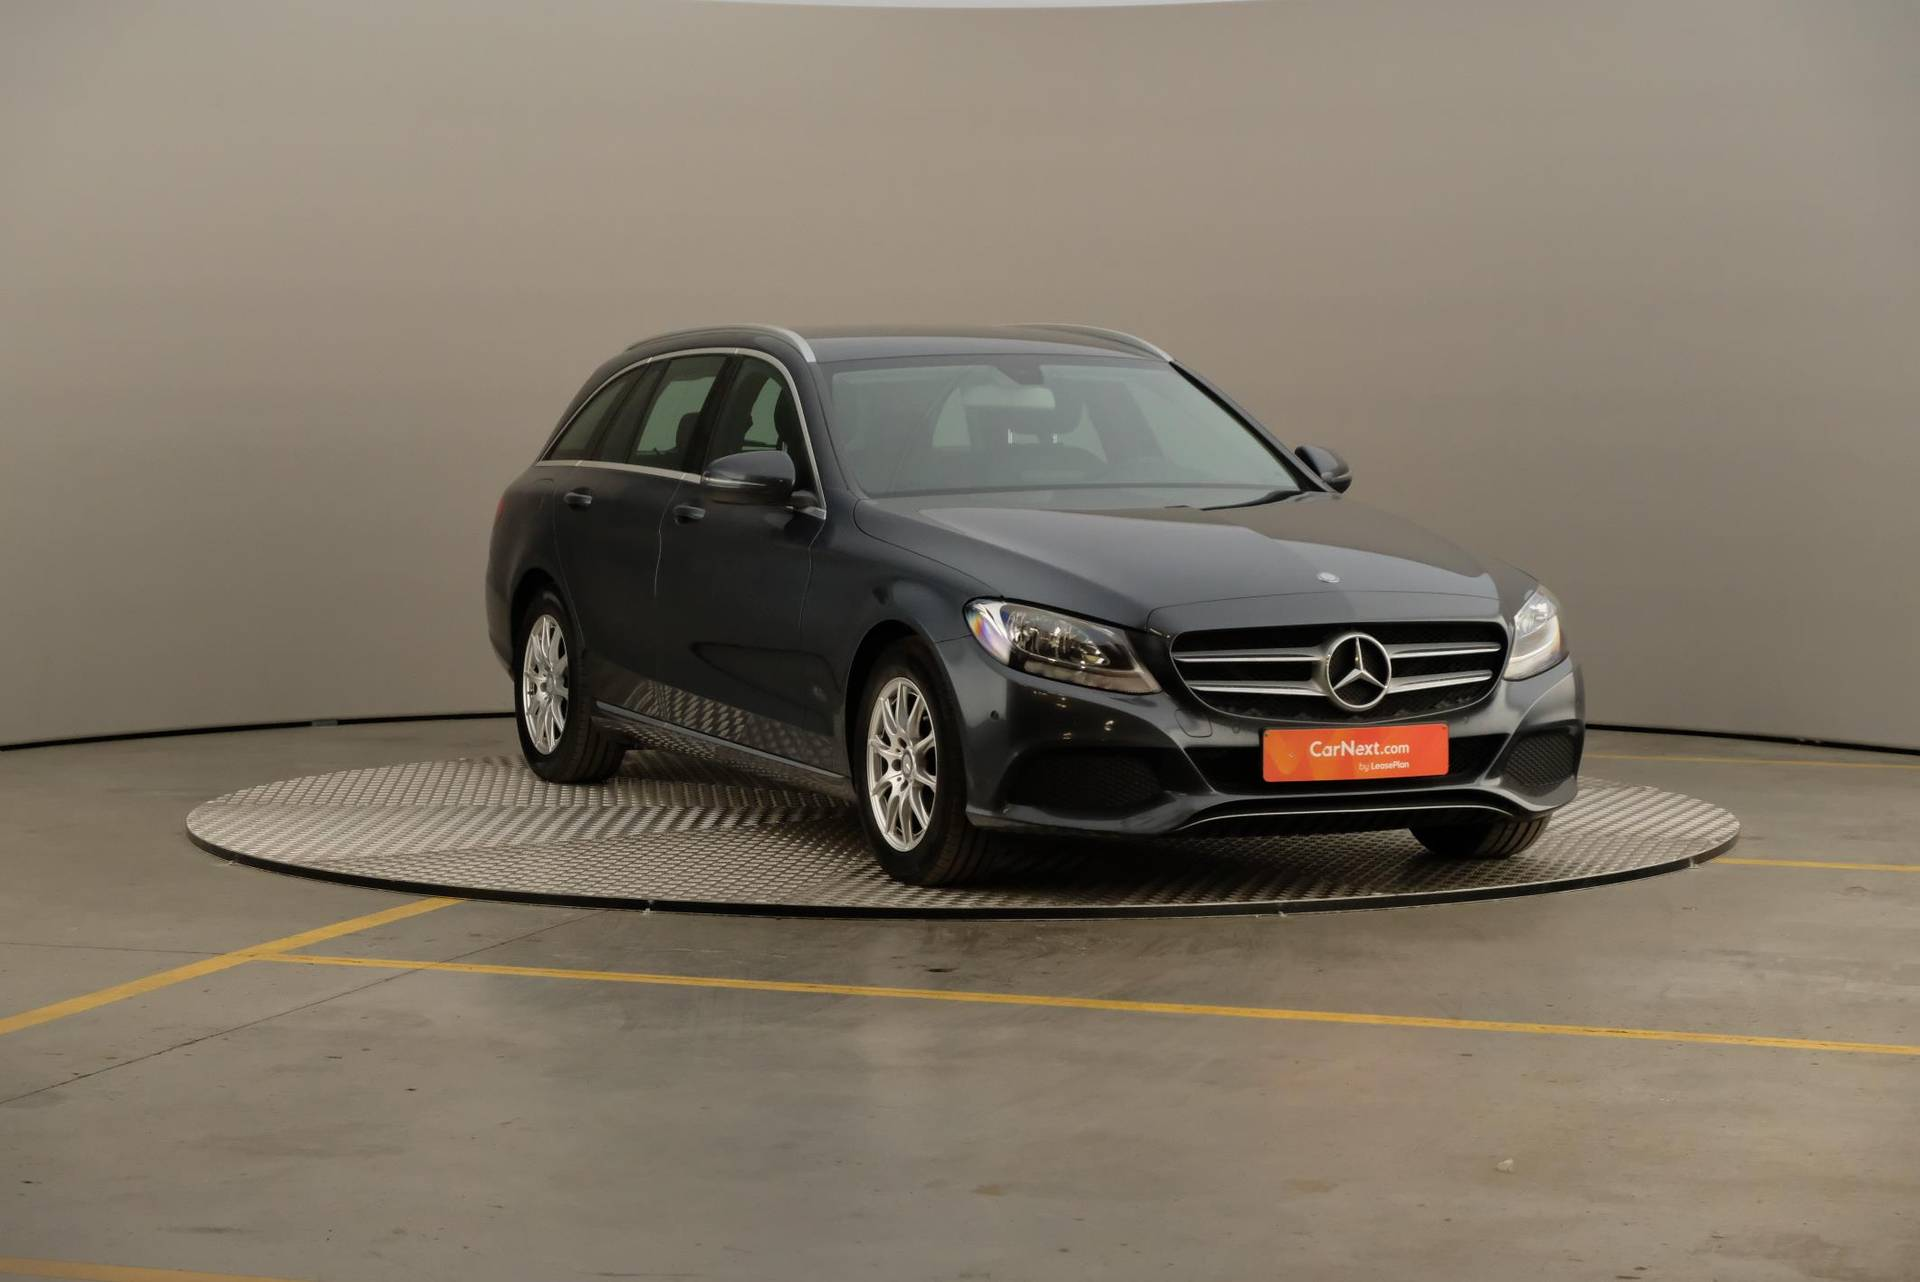 Mercedes-Benz C-Klasse 180 d PACK AVANTGARDE PACK EASY GPS PDC TREKHAAK EURO 6.., 360-image29